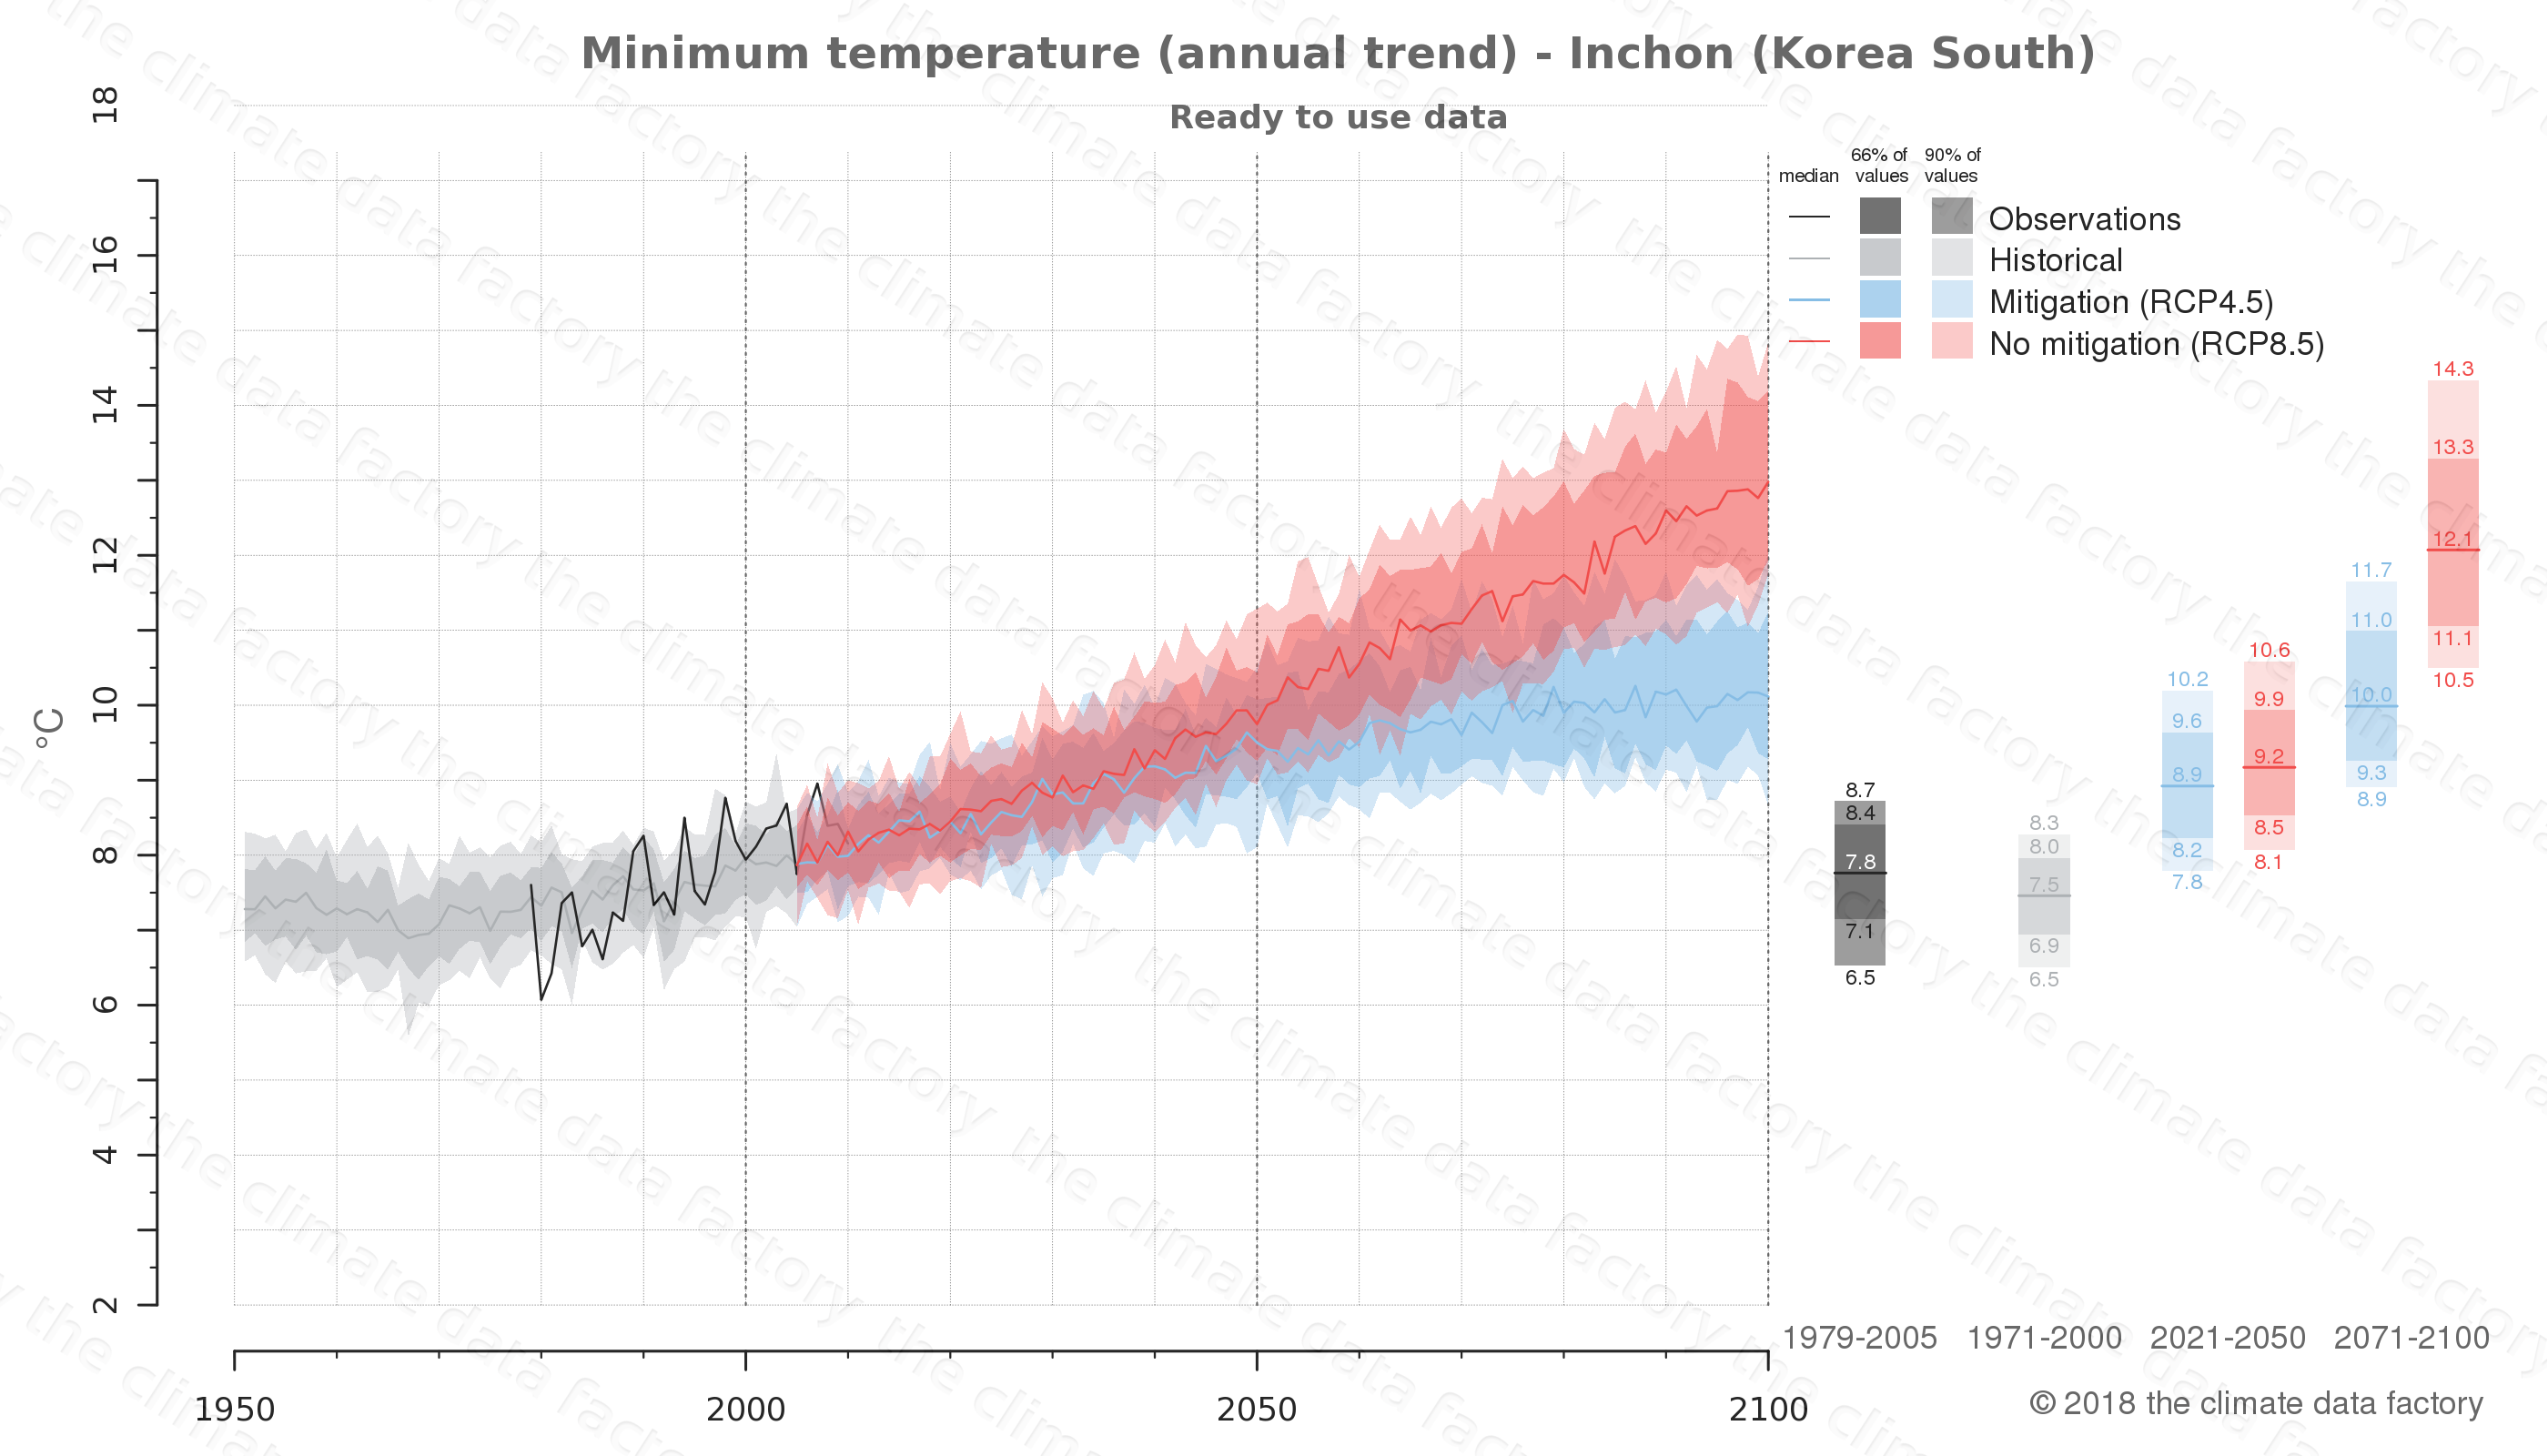 climate change data policy adaptation climate graph city data minimum-temperature inchon south korea